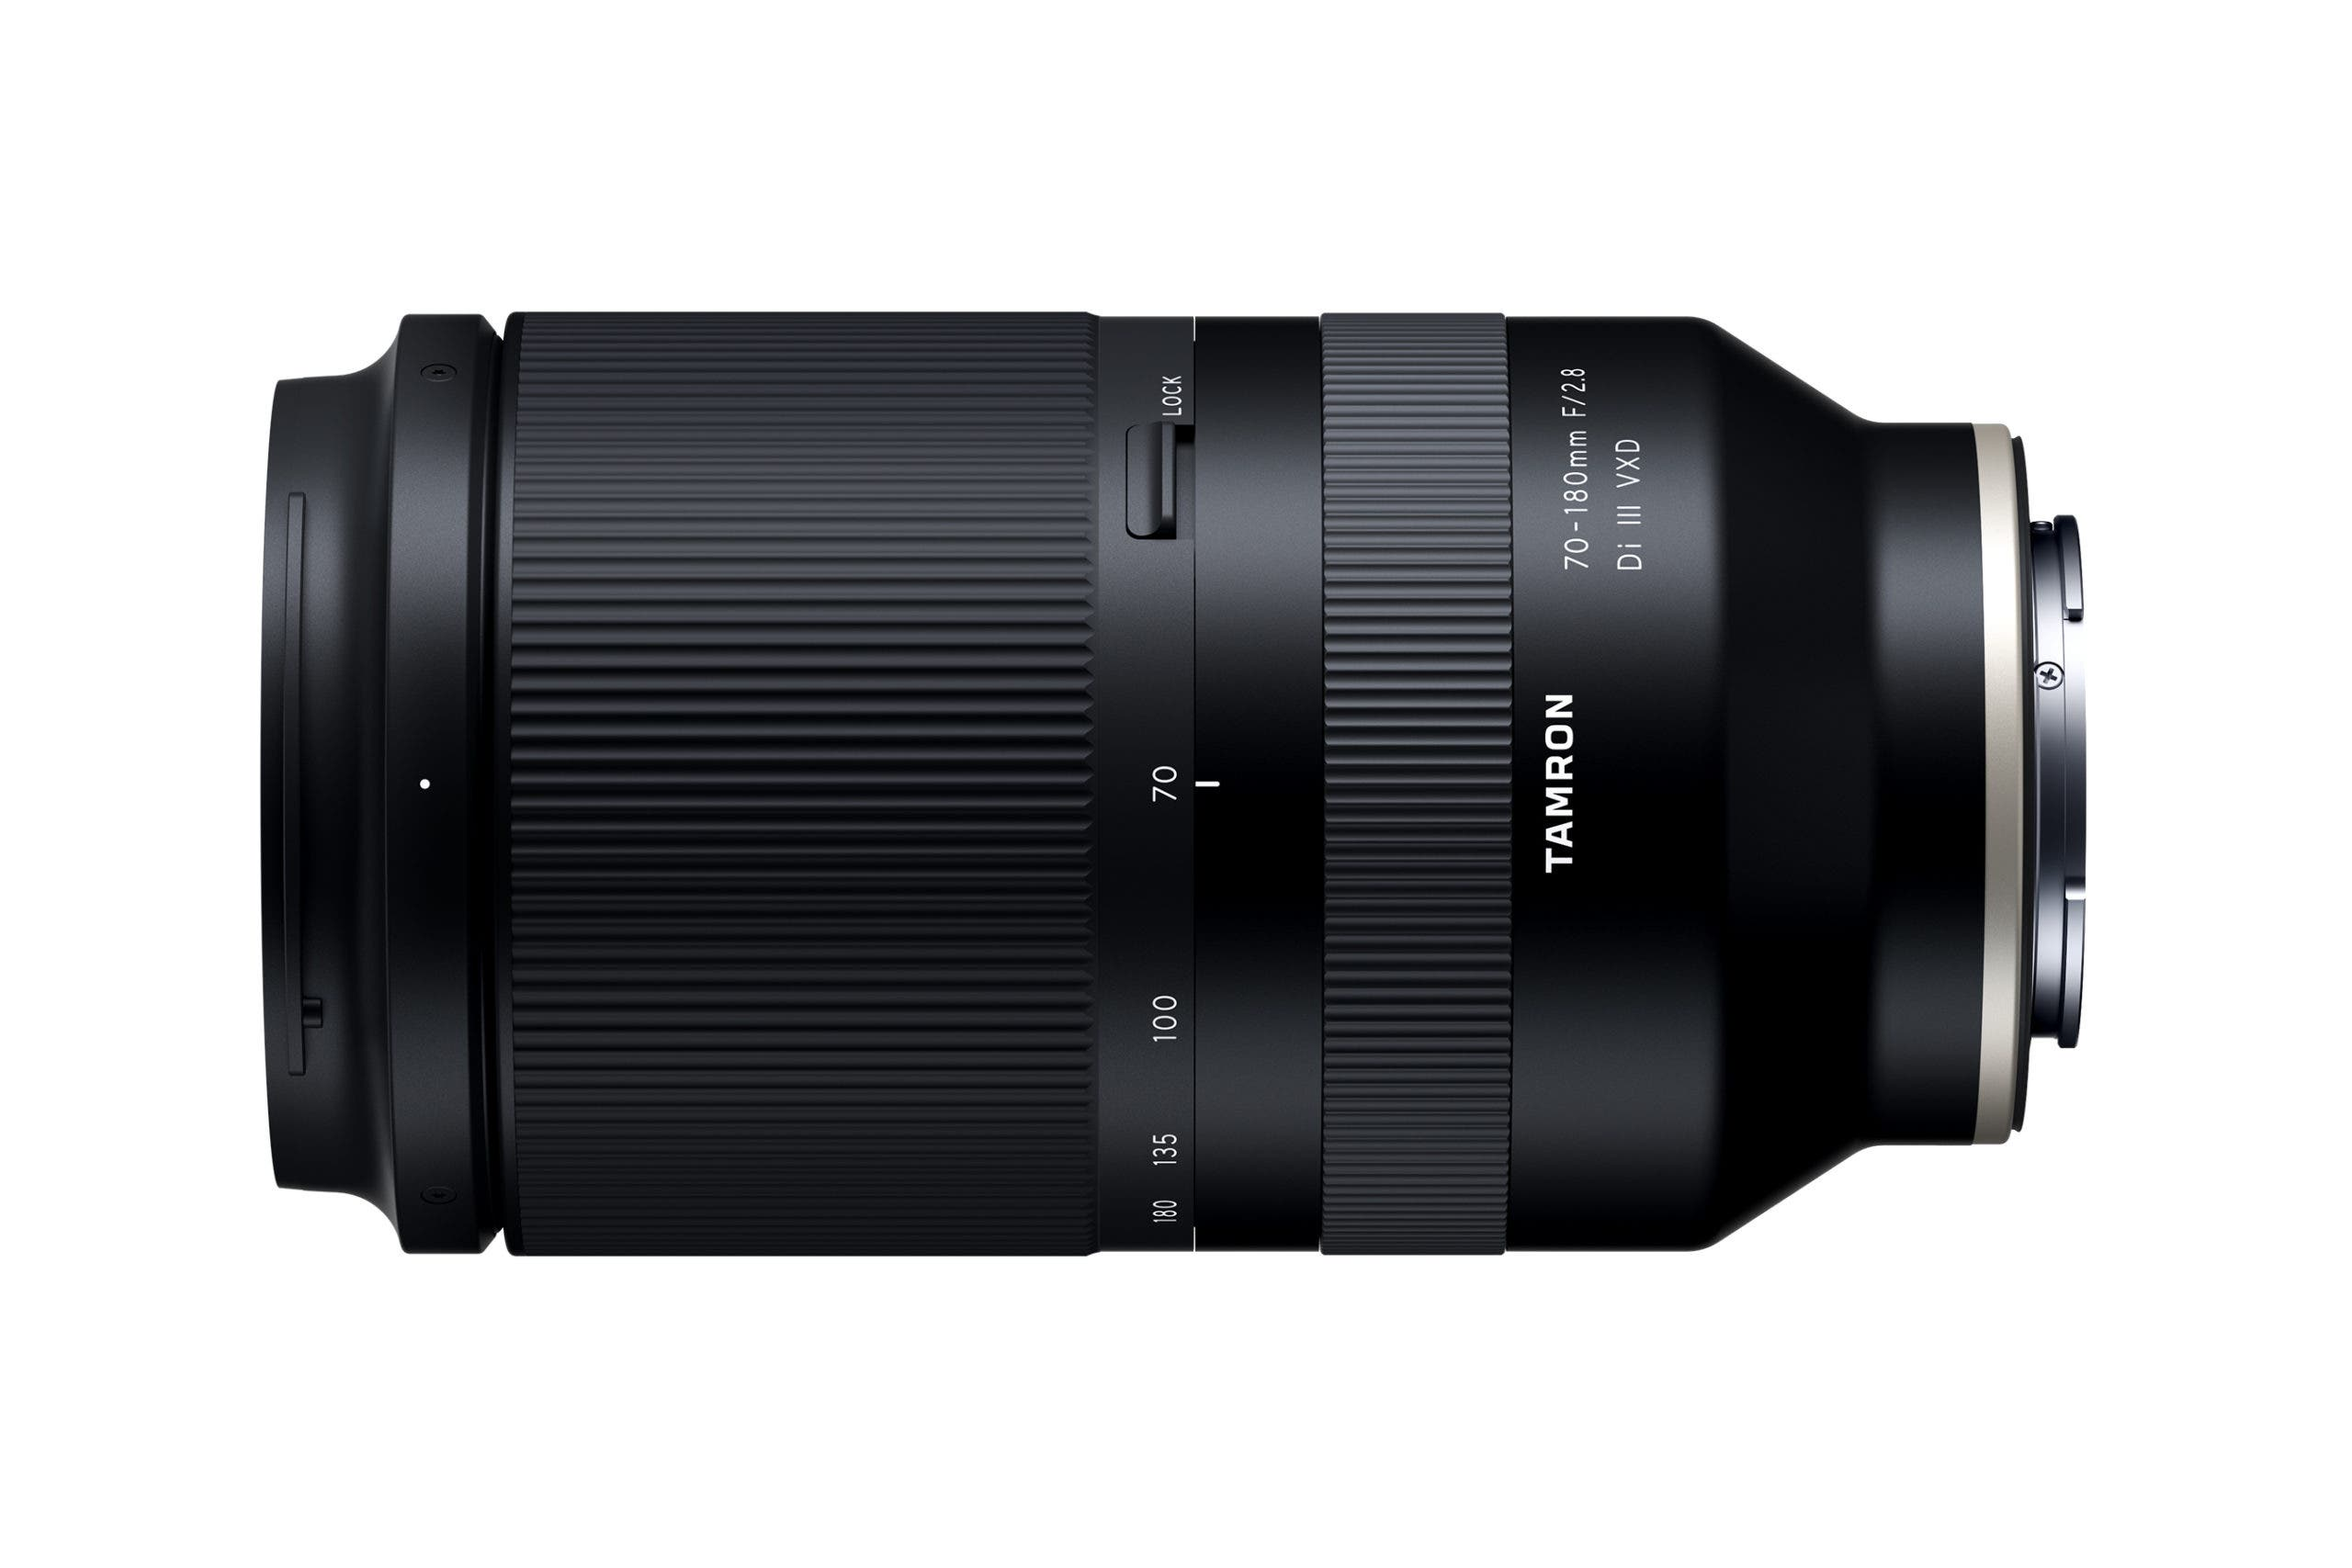 Potential Flaw: The Tamron 70-180mm F2.8 Is Missing a Very Big Feature